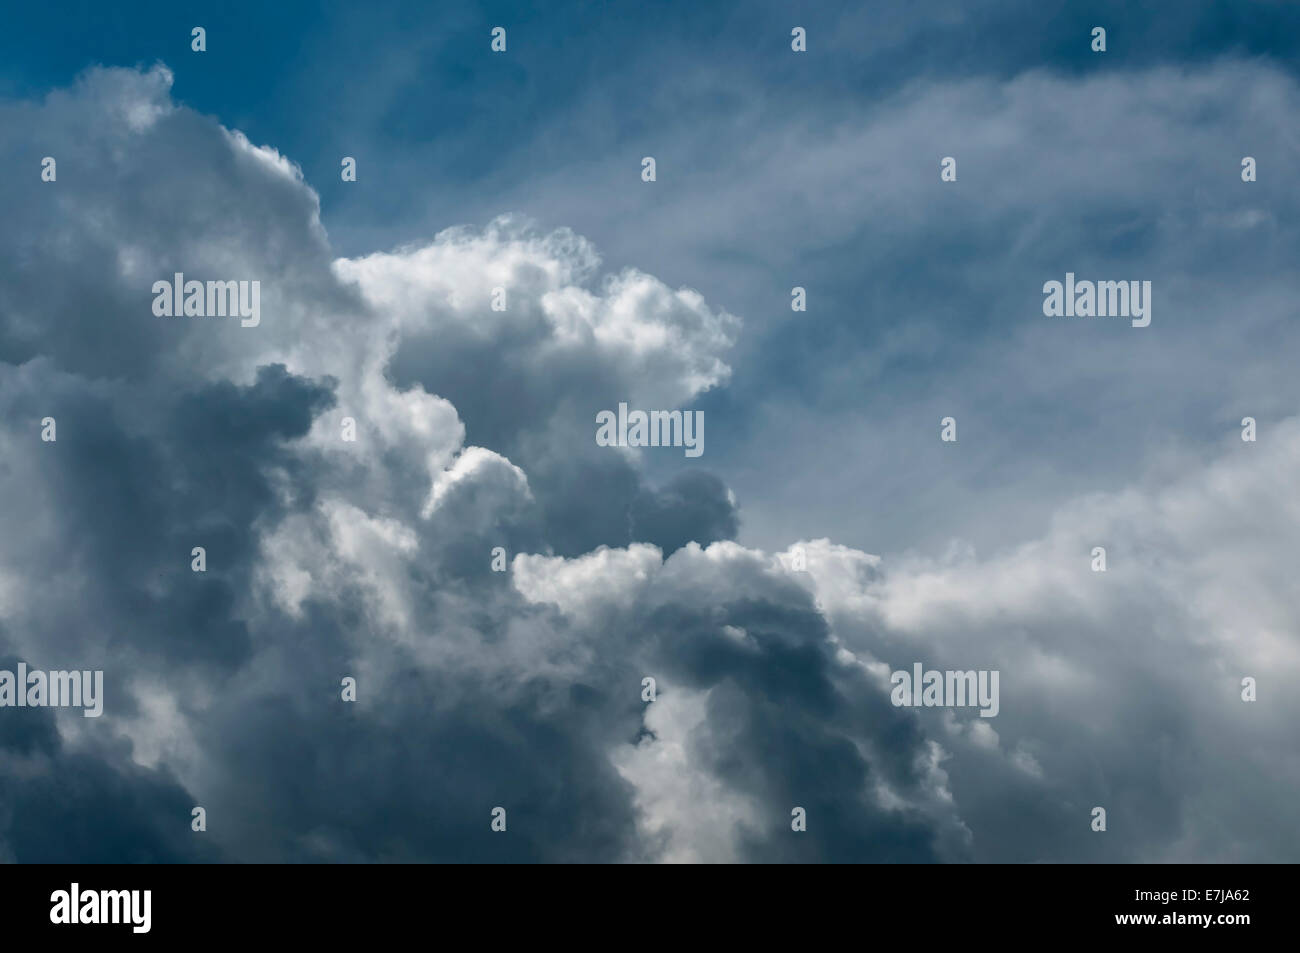 Cumulonimbus cloud, thunderstorm cloud, Germany - Stock Image